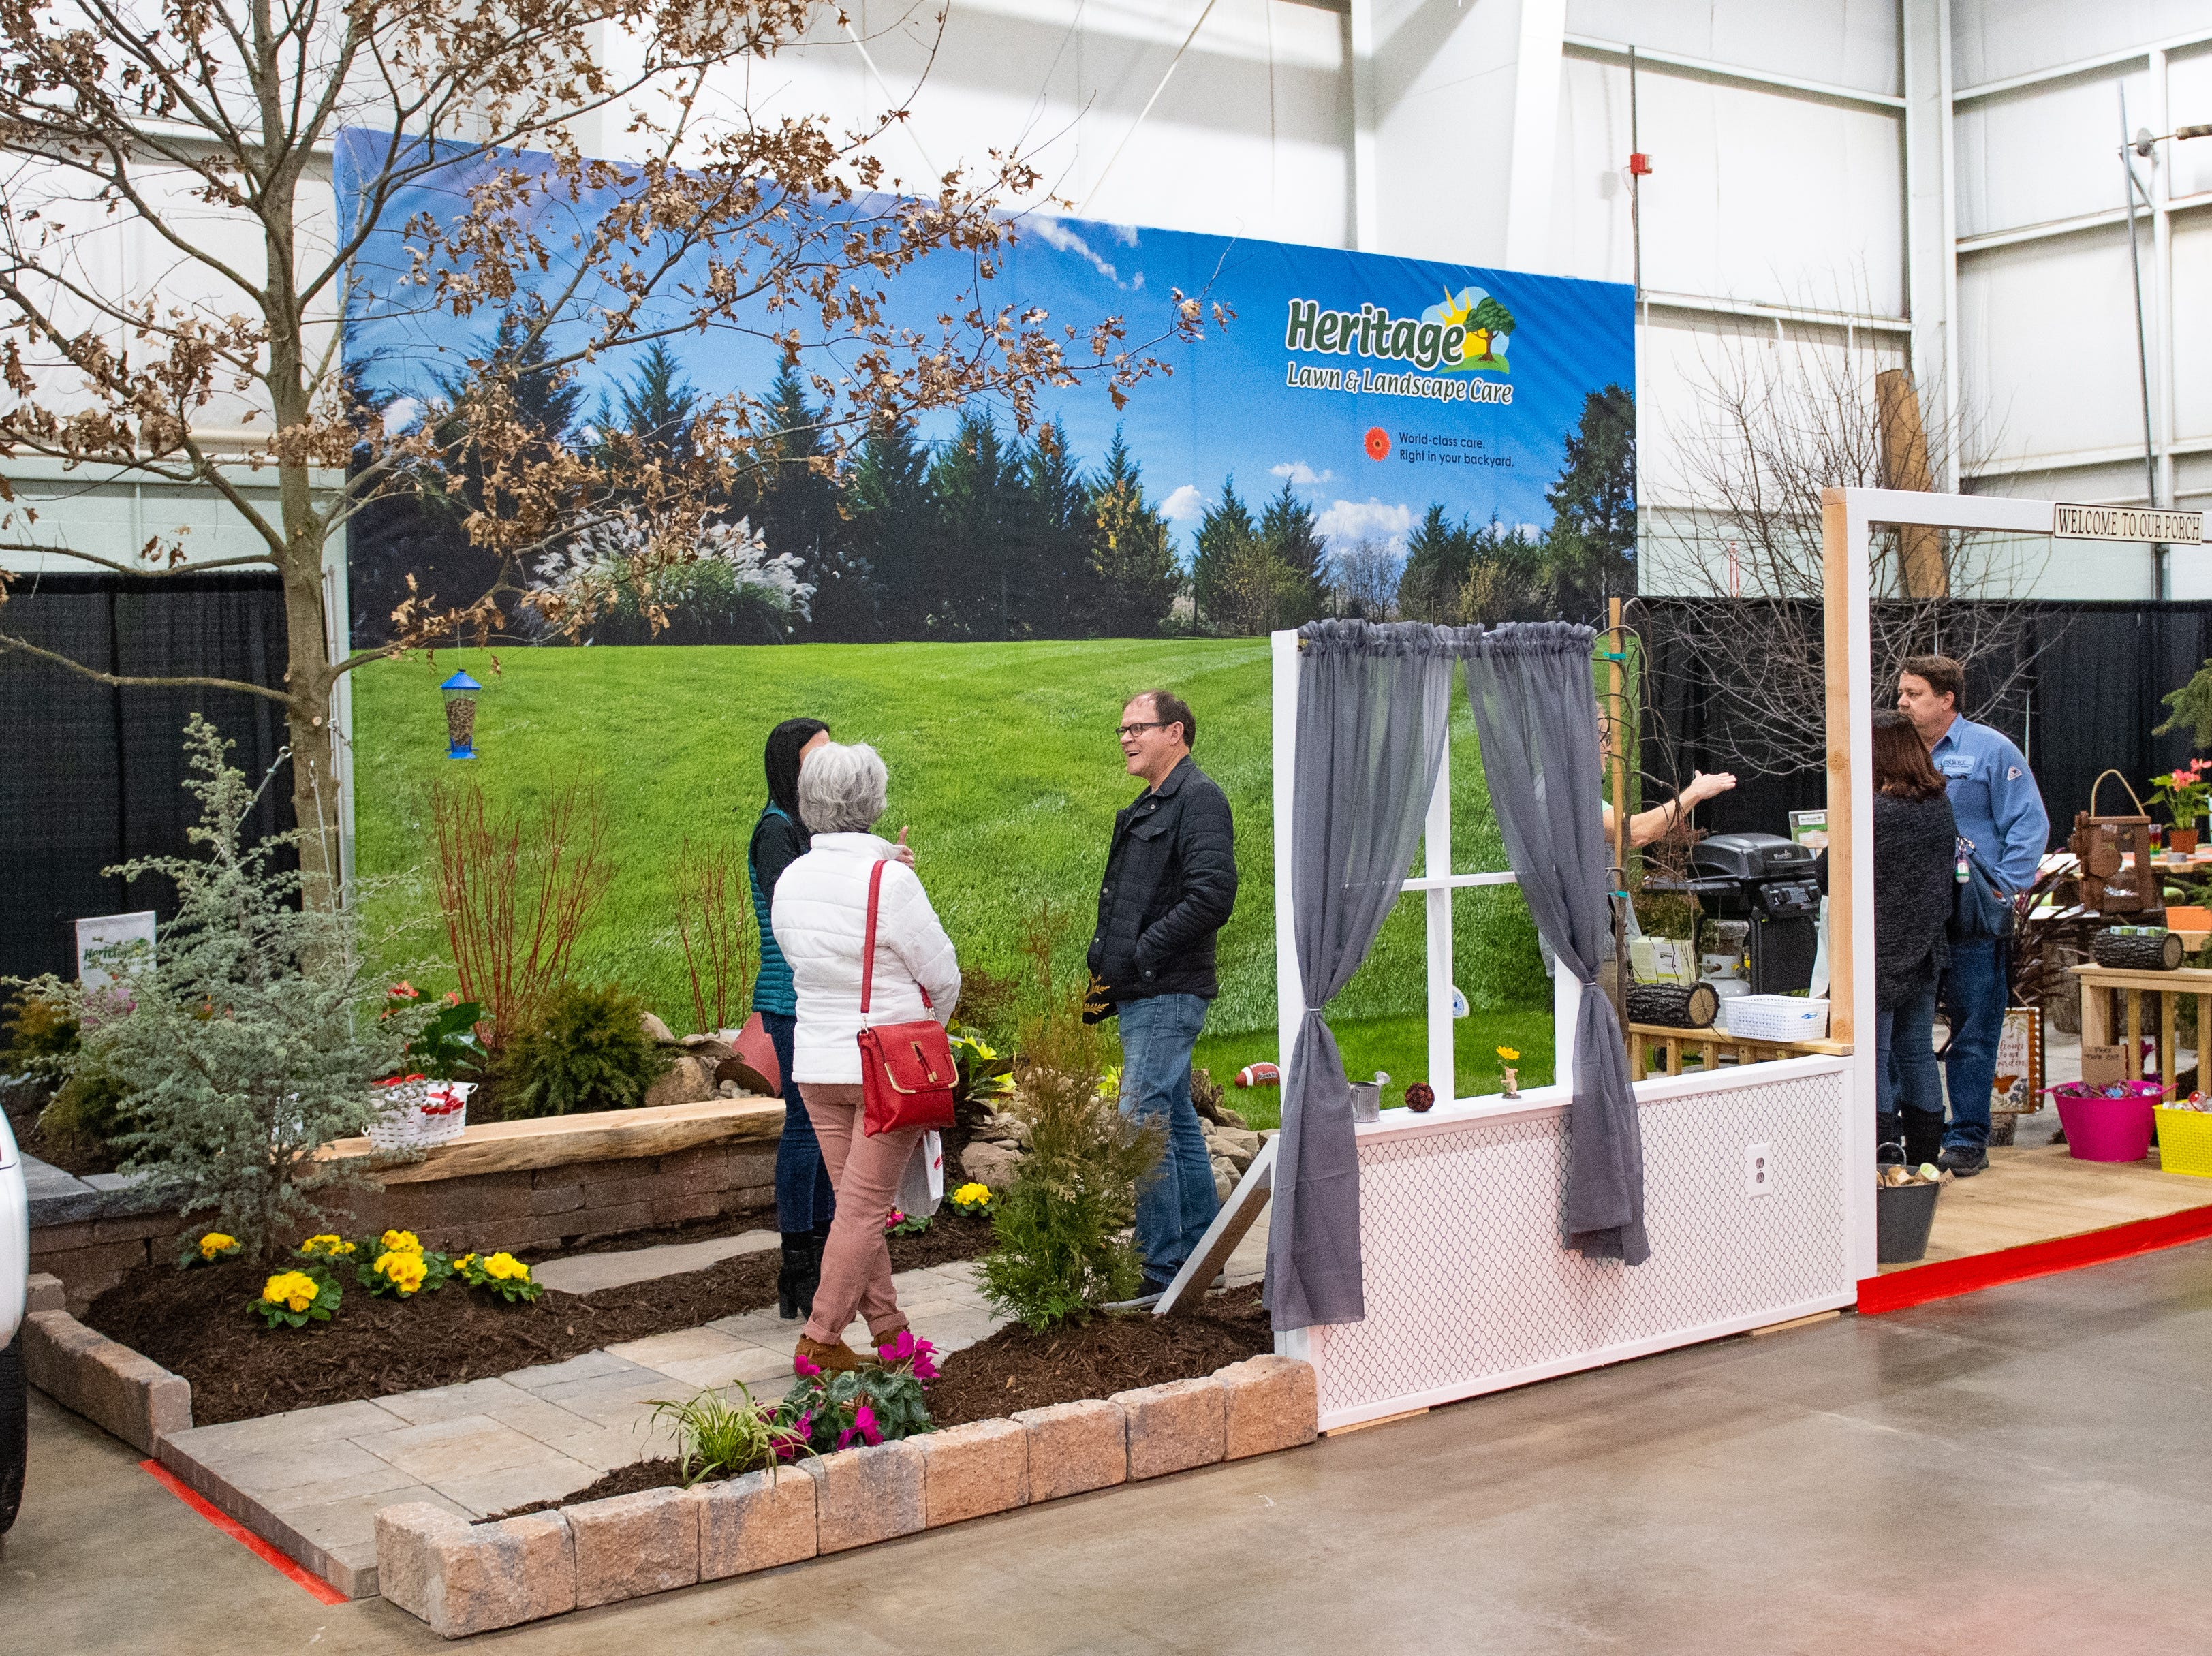 Heritage Lawn and Landscape has a booth at the 2019 Home & Garden Show, February 8, 2019.